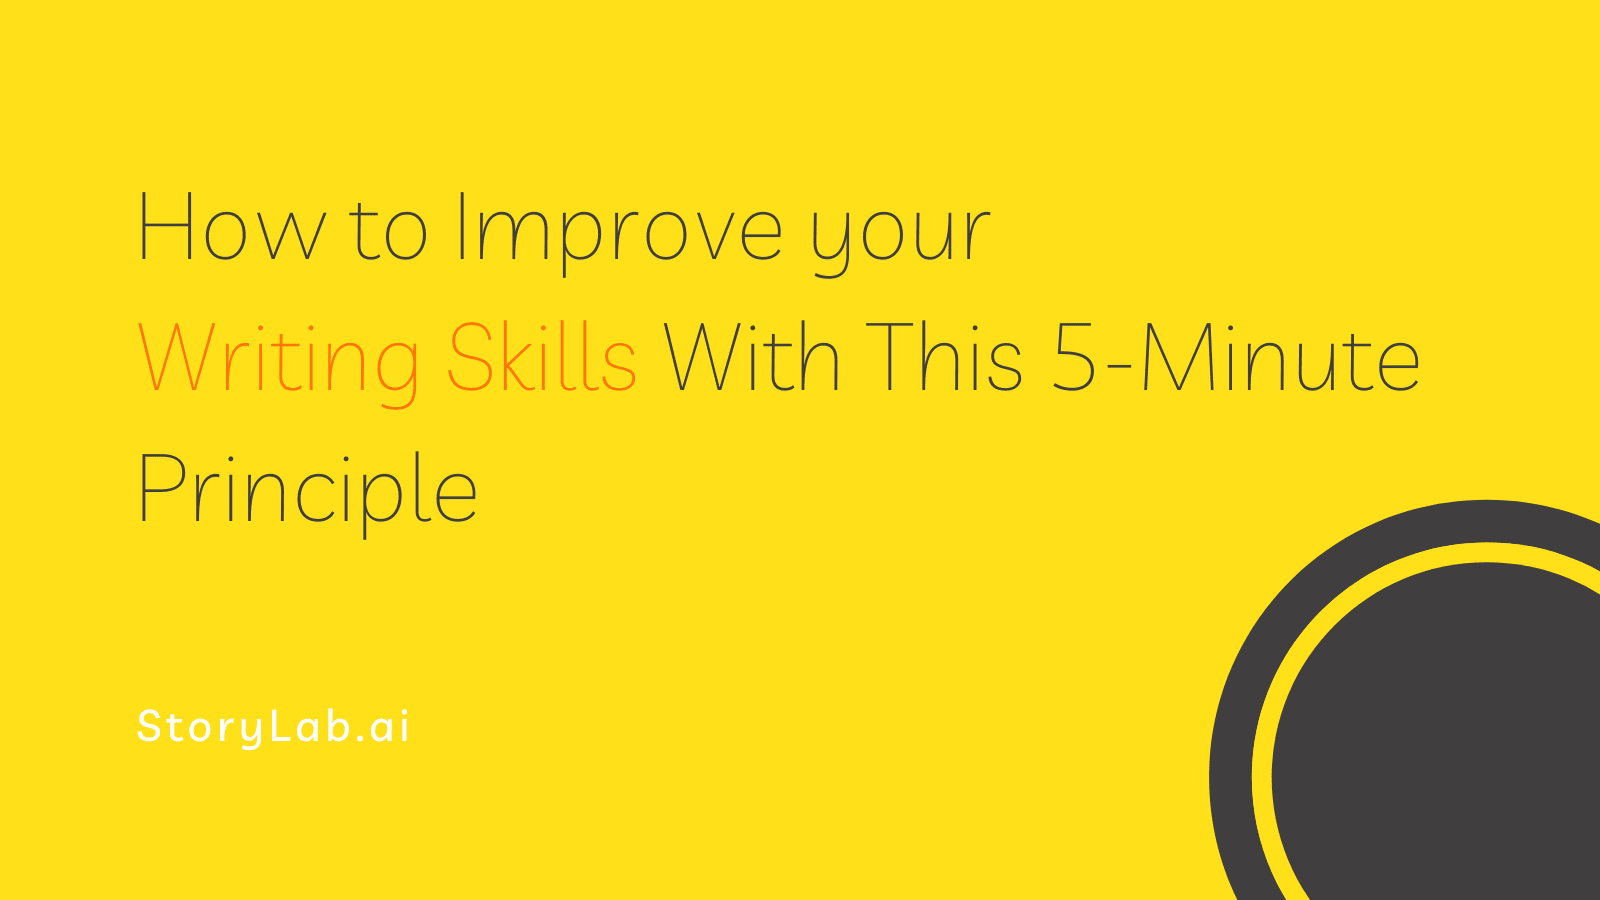 How to Improve your Writing Skills With This 5-Minute Principle